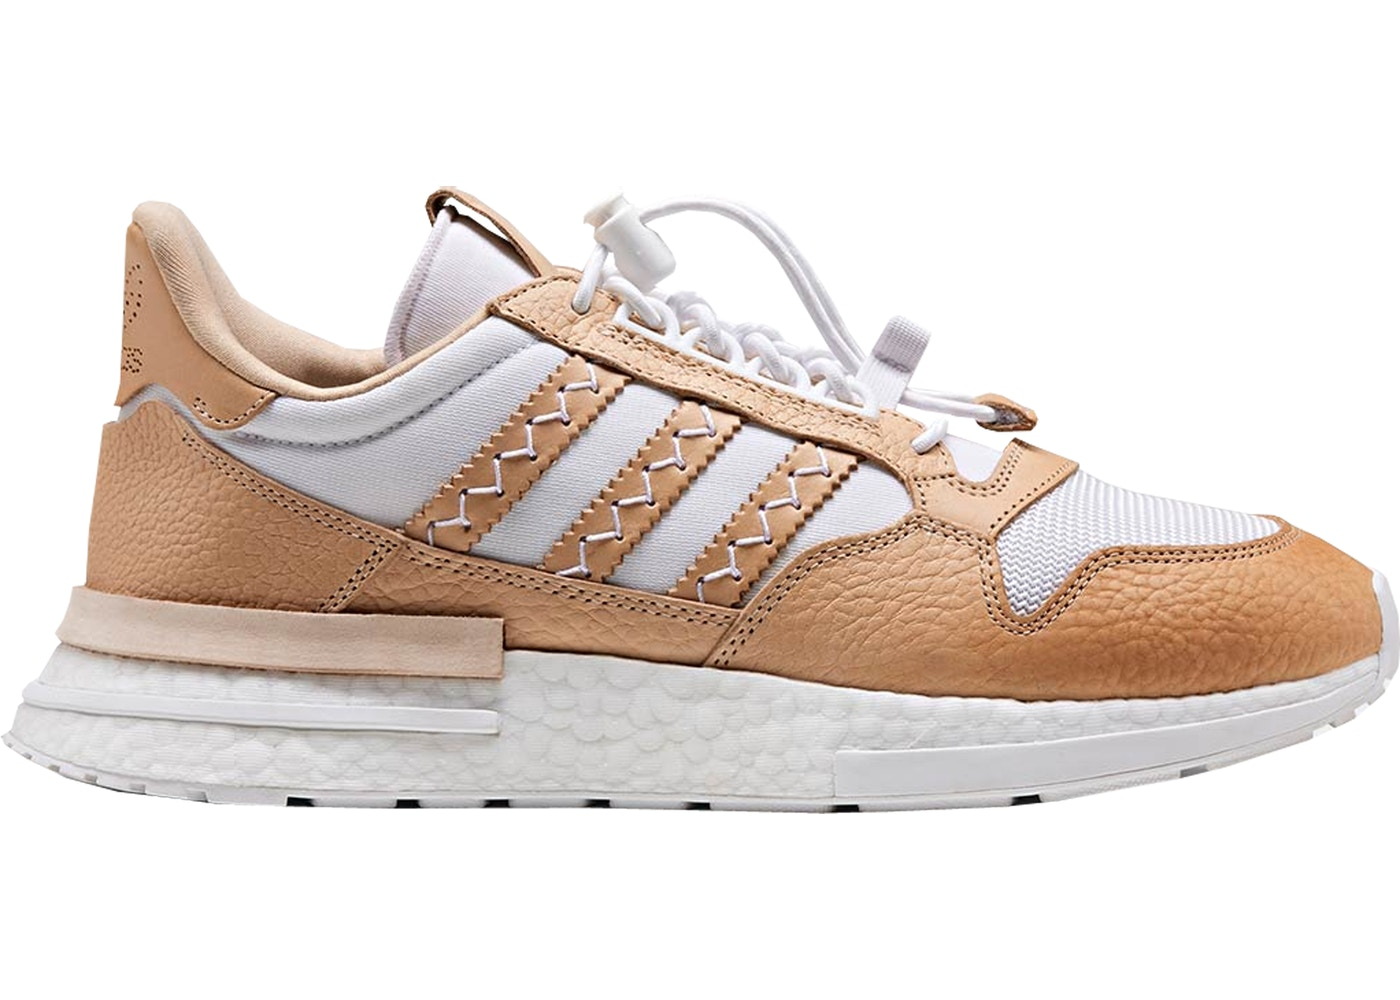 801cc2bc0ed Sell. or Ask. Size  9.5. View All Bids. adidas ZX500 RM Hender Scheme ...